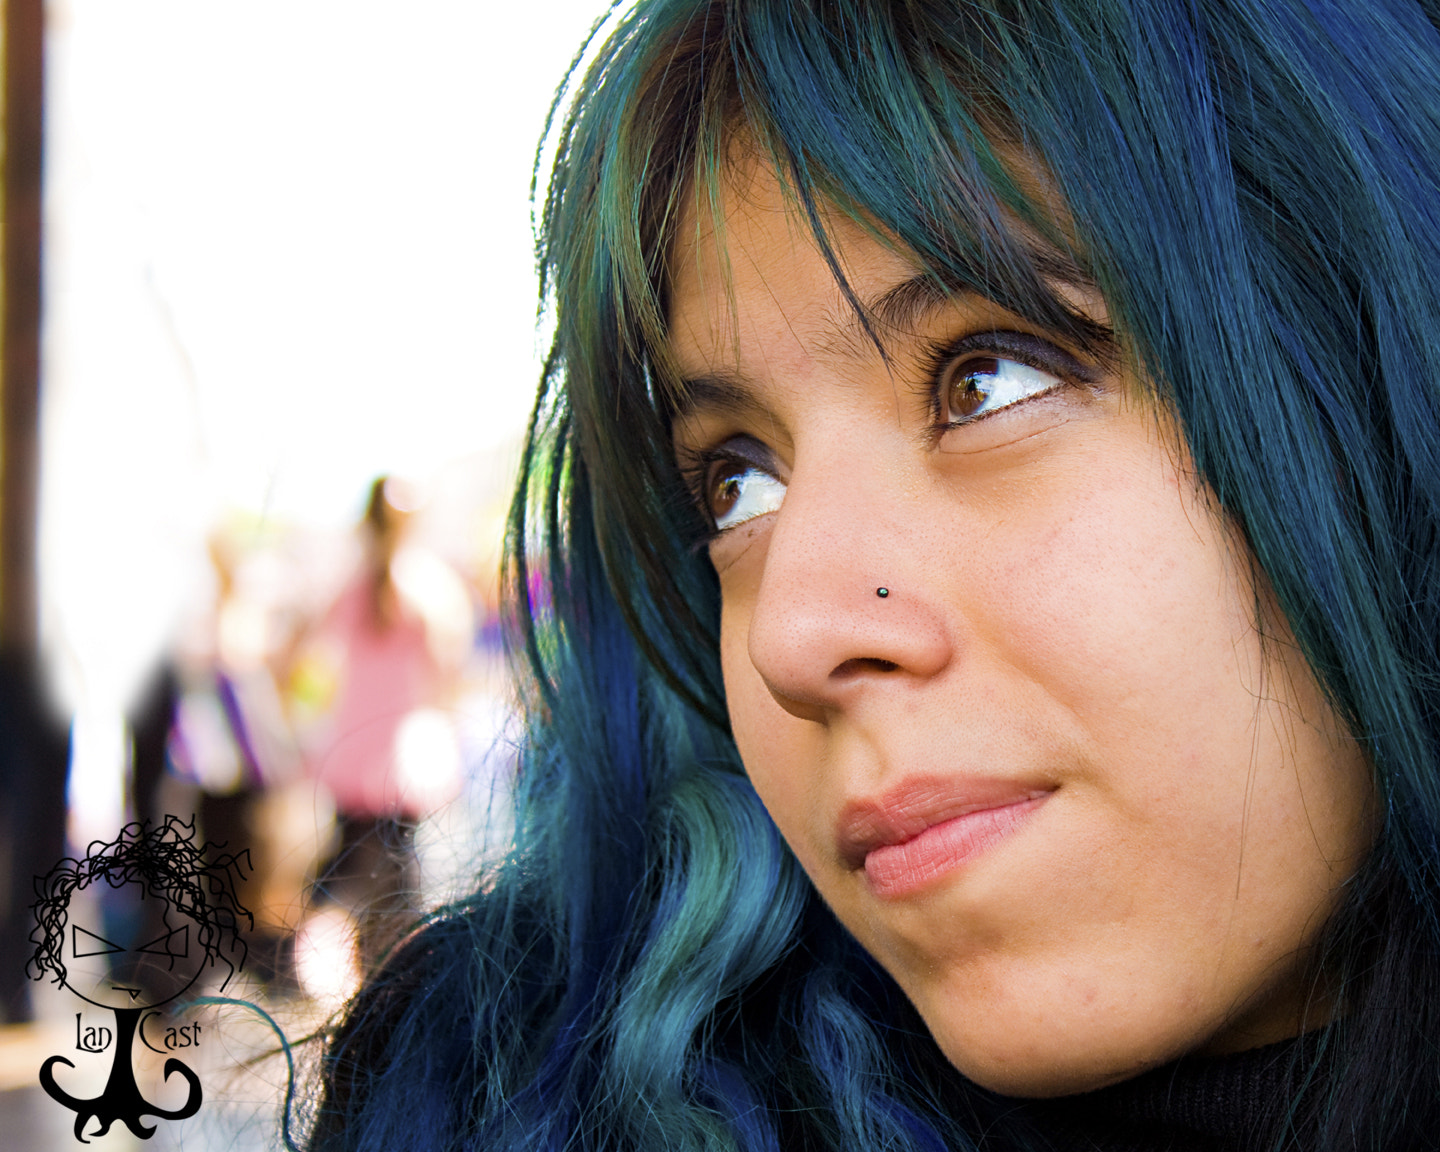 Photograph Brown eyes,Blue hair by Richard D`LanCast on 500px